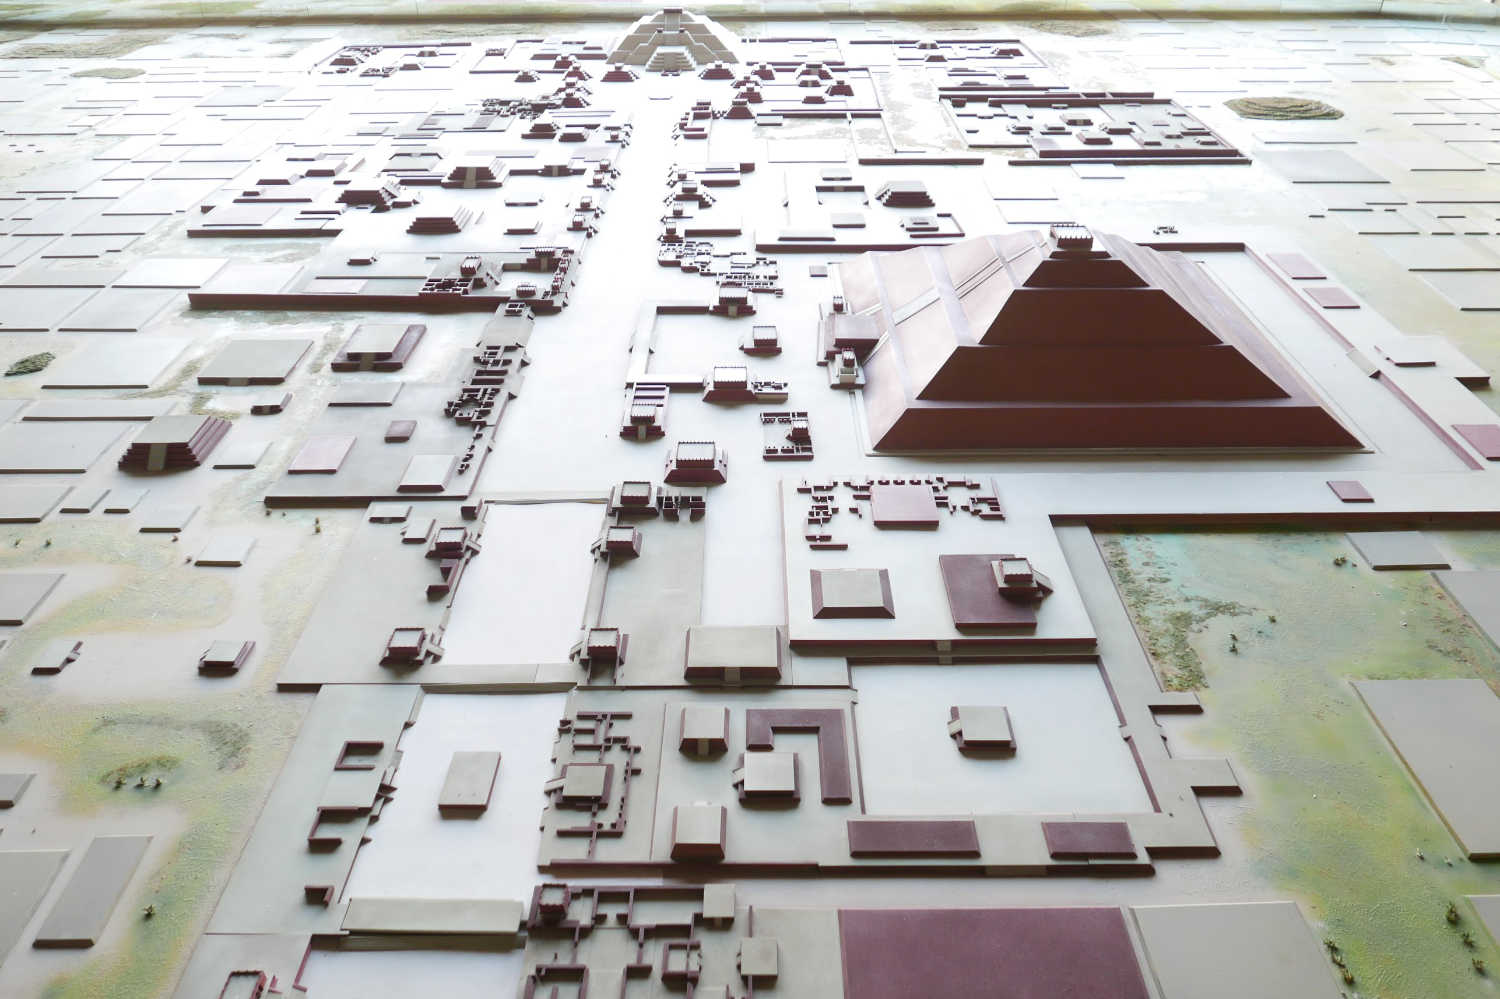 Miniature version of Teotihuacan in its museum